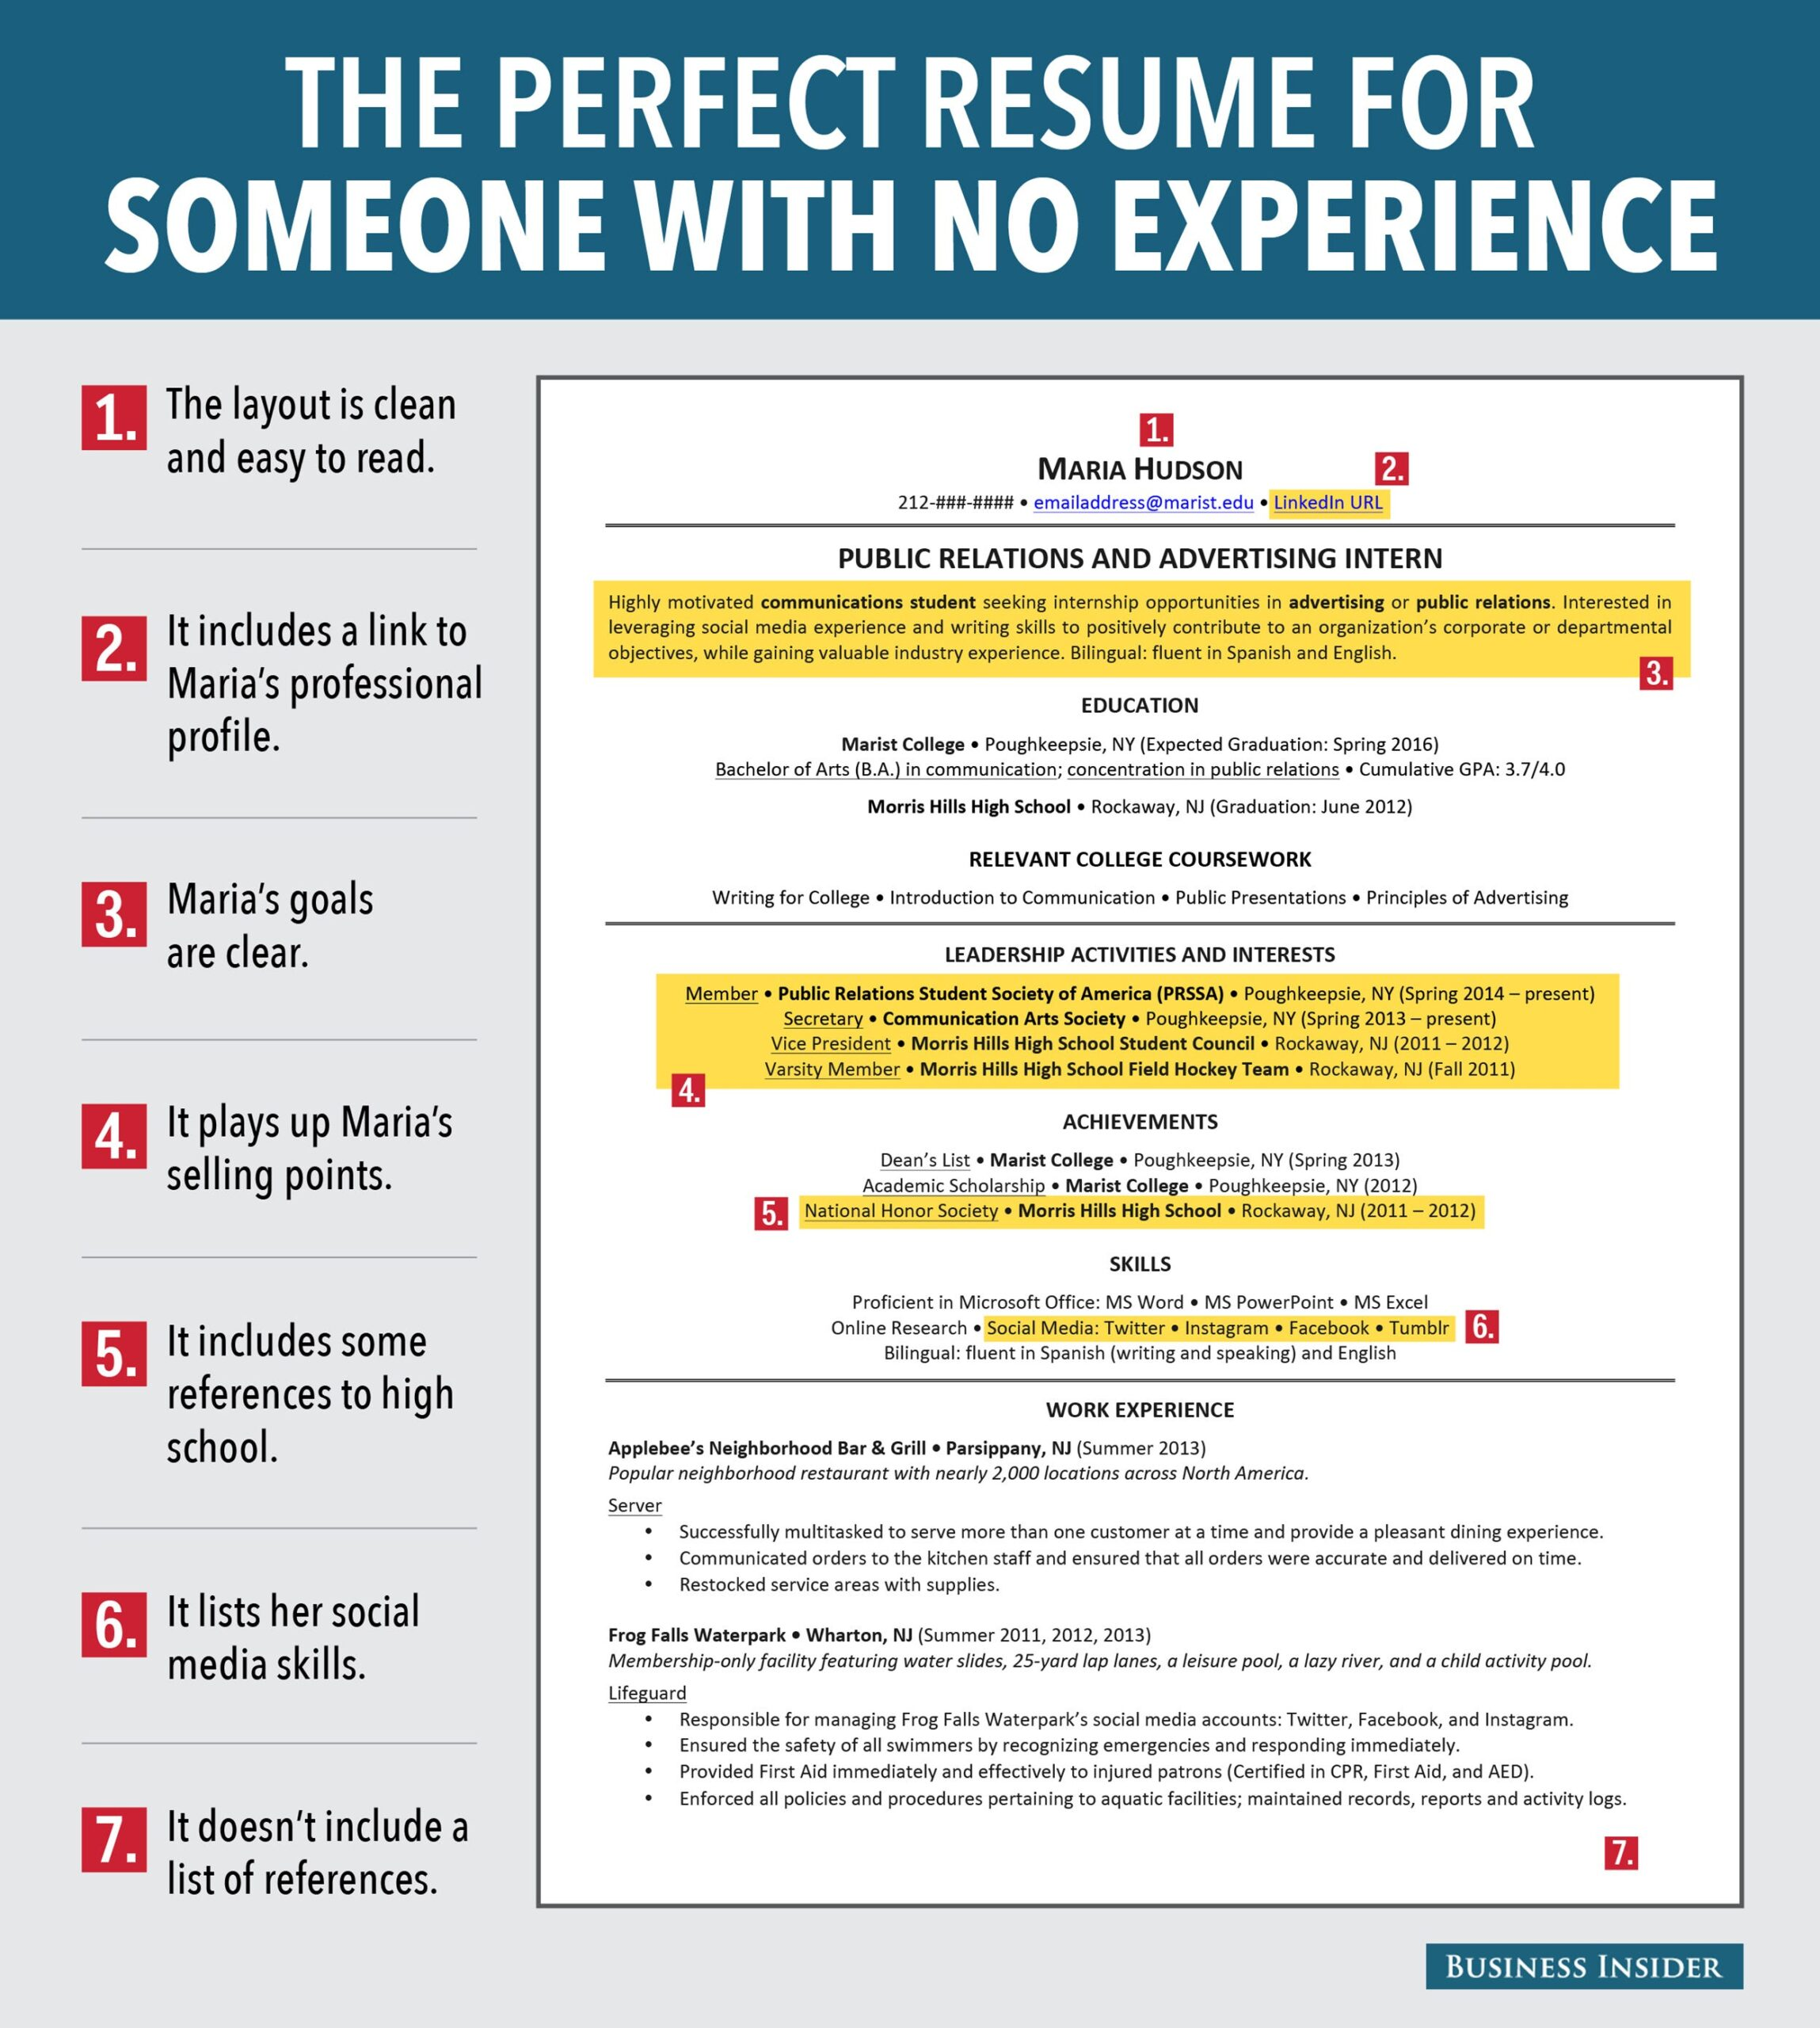 resume for job seeker with no experience business insider teenager little work Resume Resume For Teenager With Little Work Experience